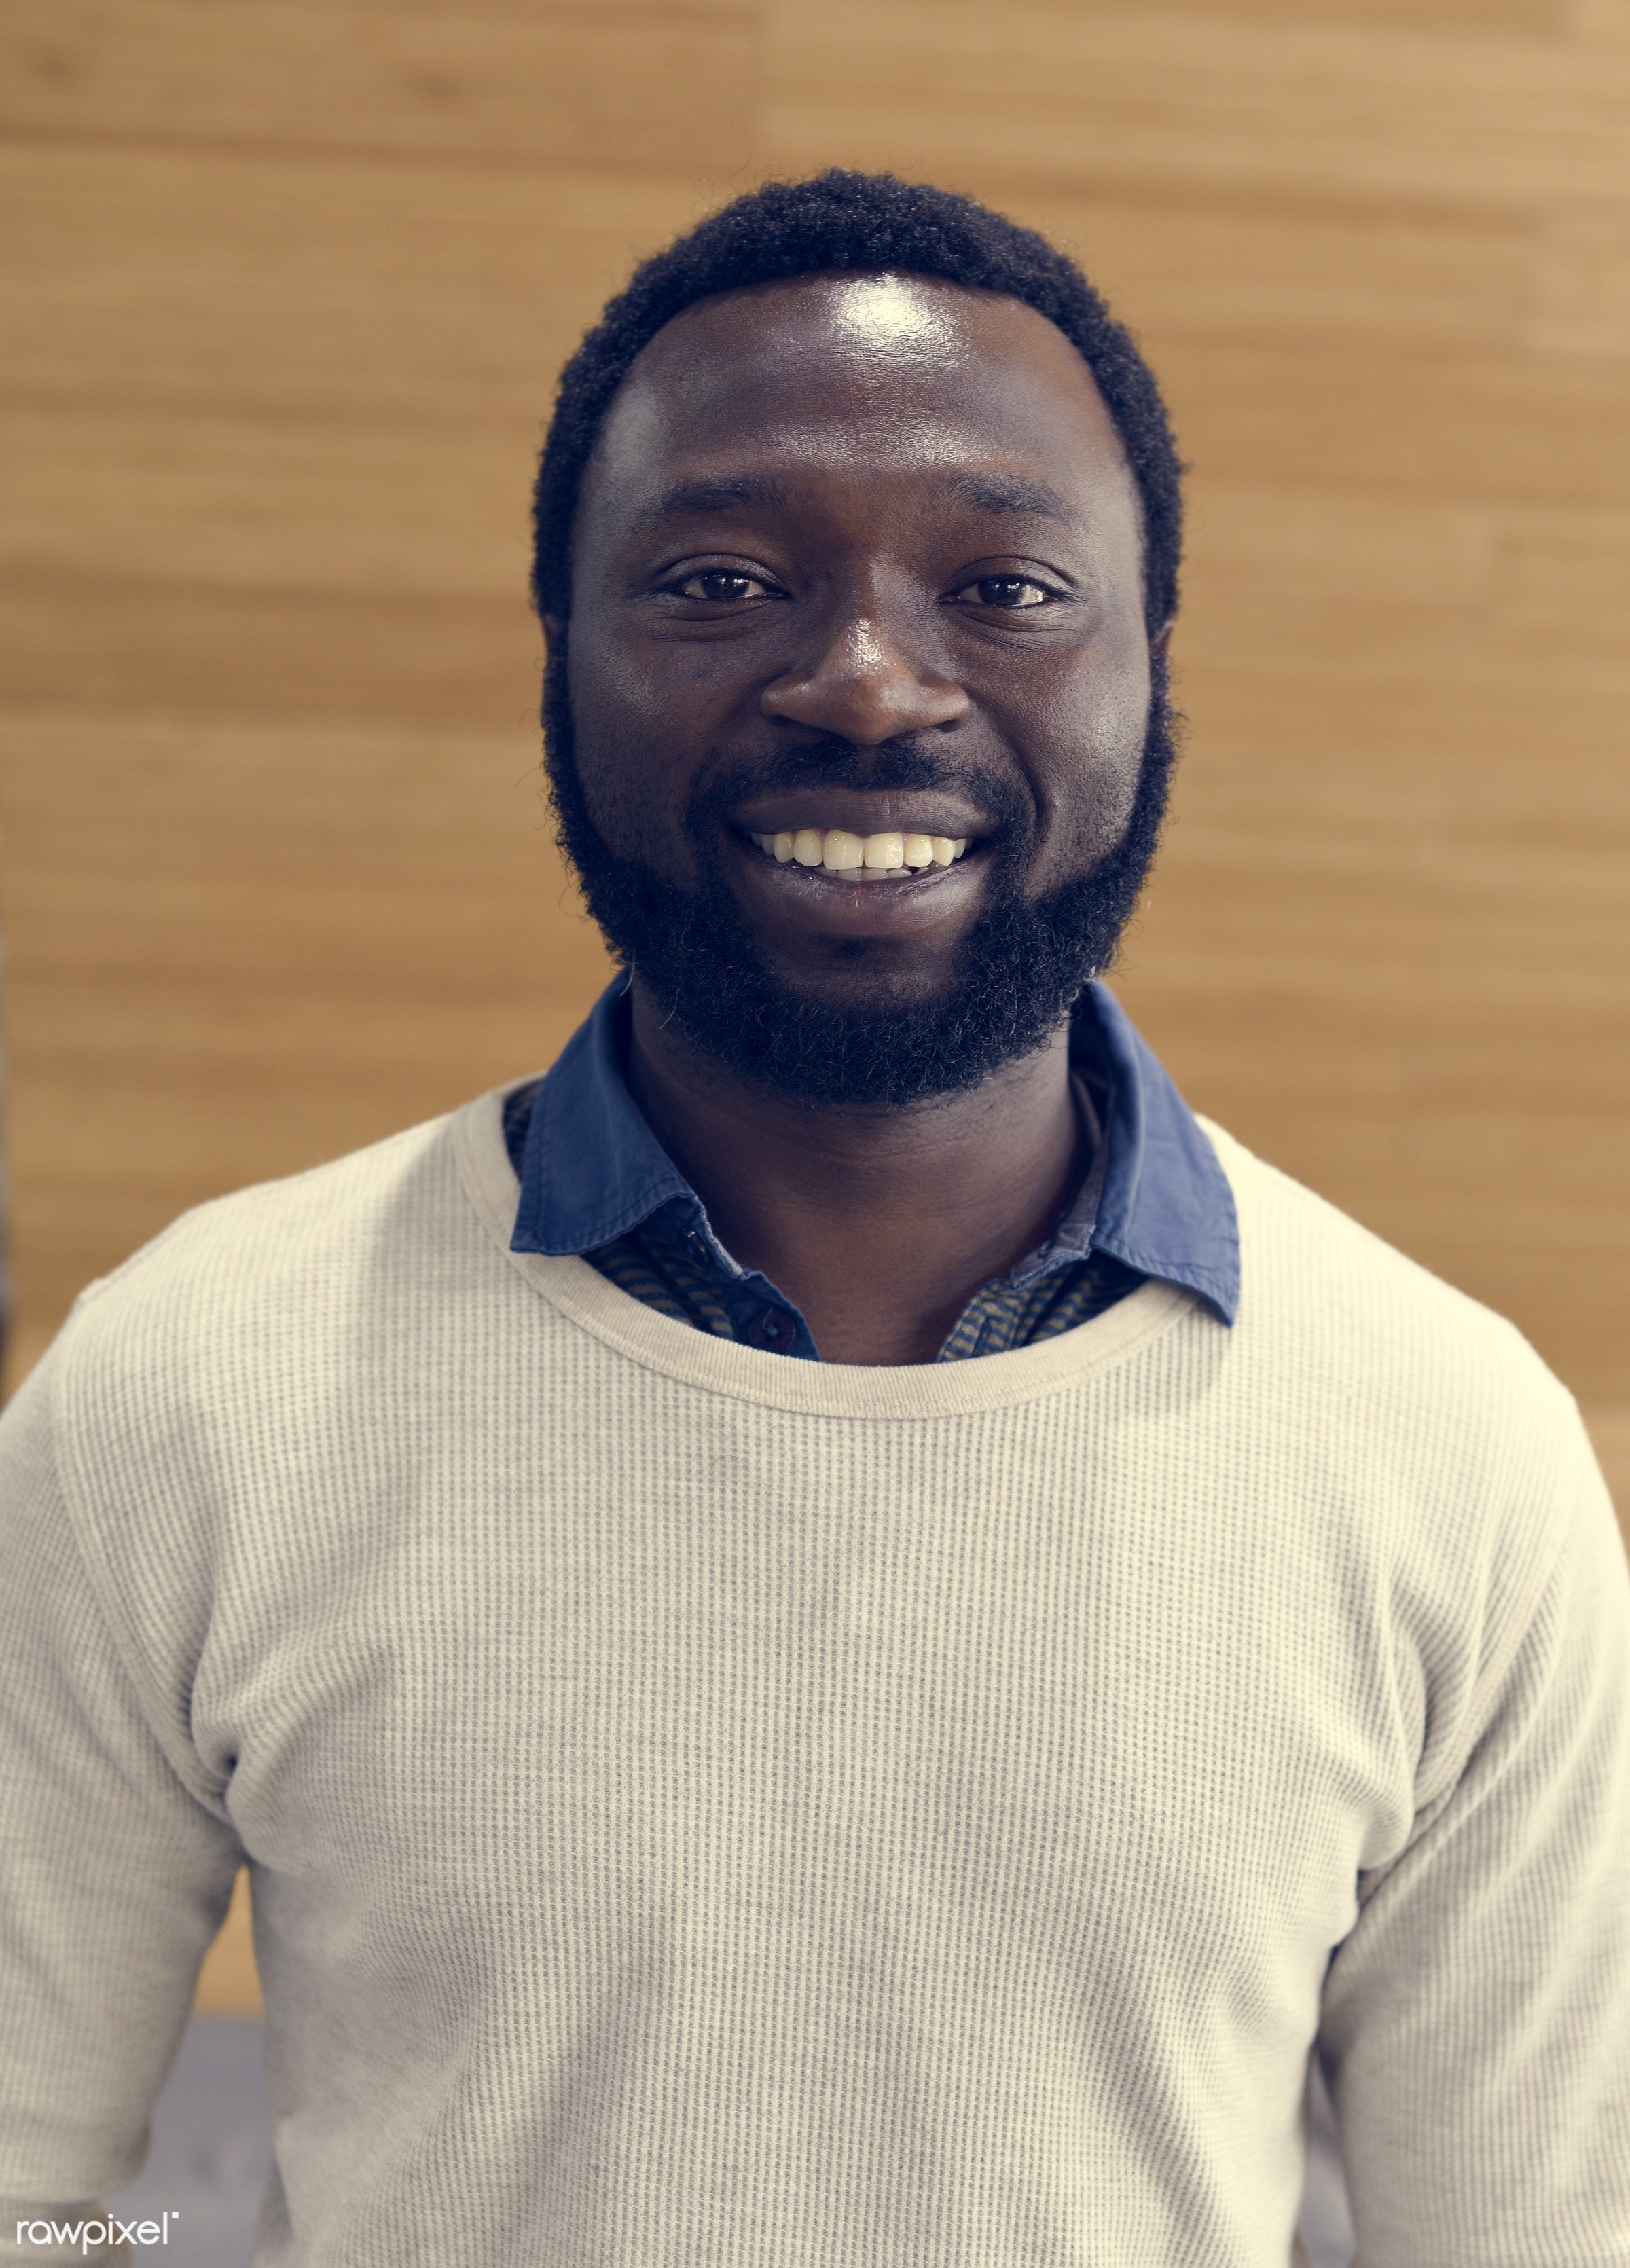 african, african descent, alone, attractive, background, beard, casual, cheerful, confident, emotion, enjoyment, expression...